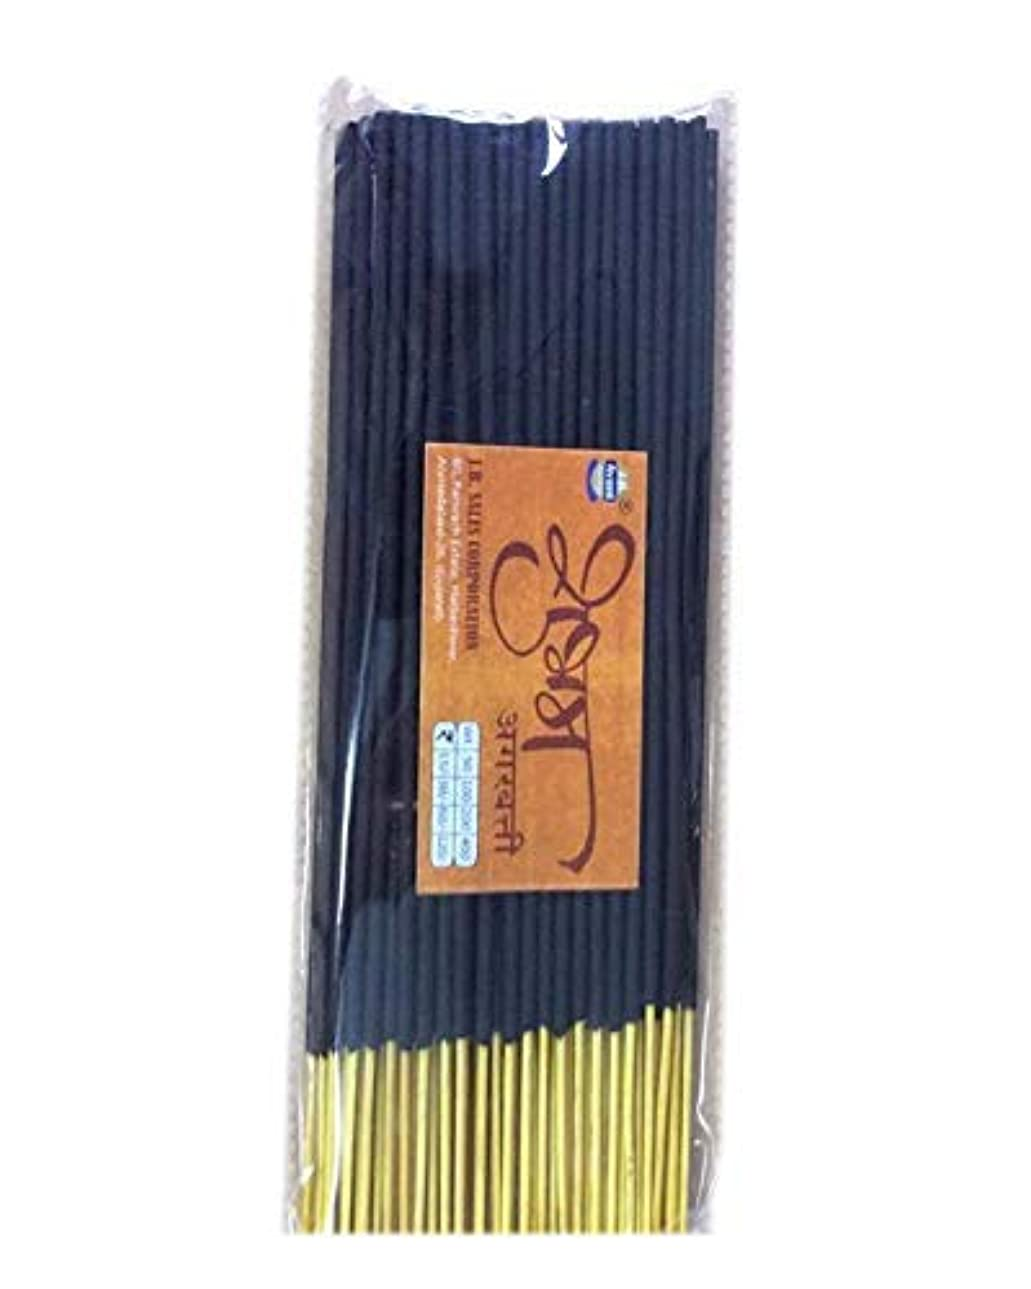 安定しましたまっすぐ憲法Avani Subham Incense Stick/Agarbatti (400 Gm. Pack)